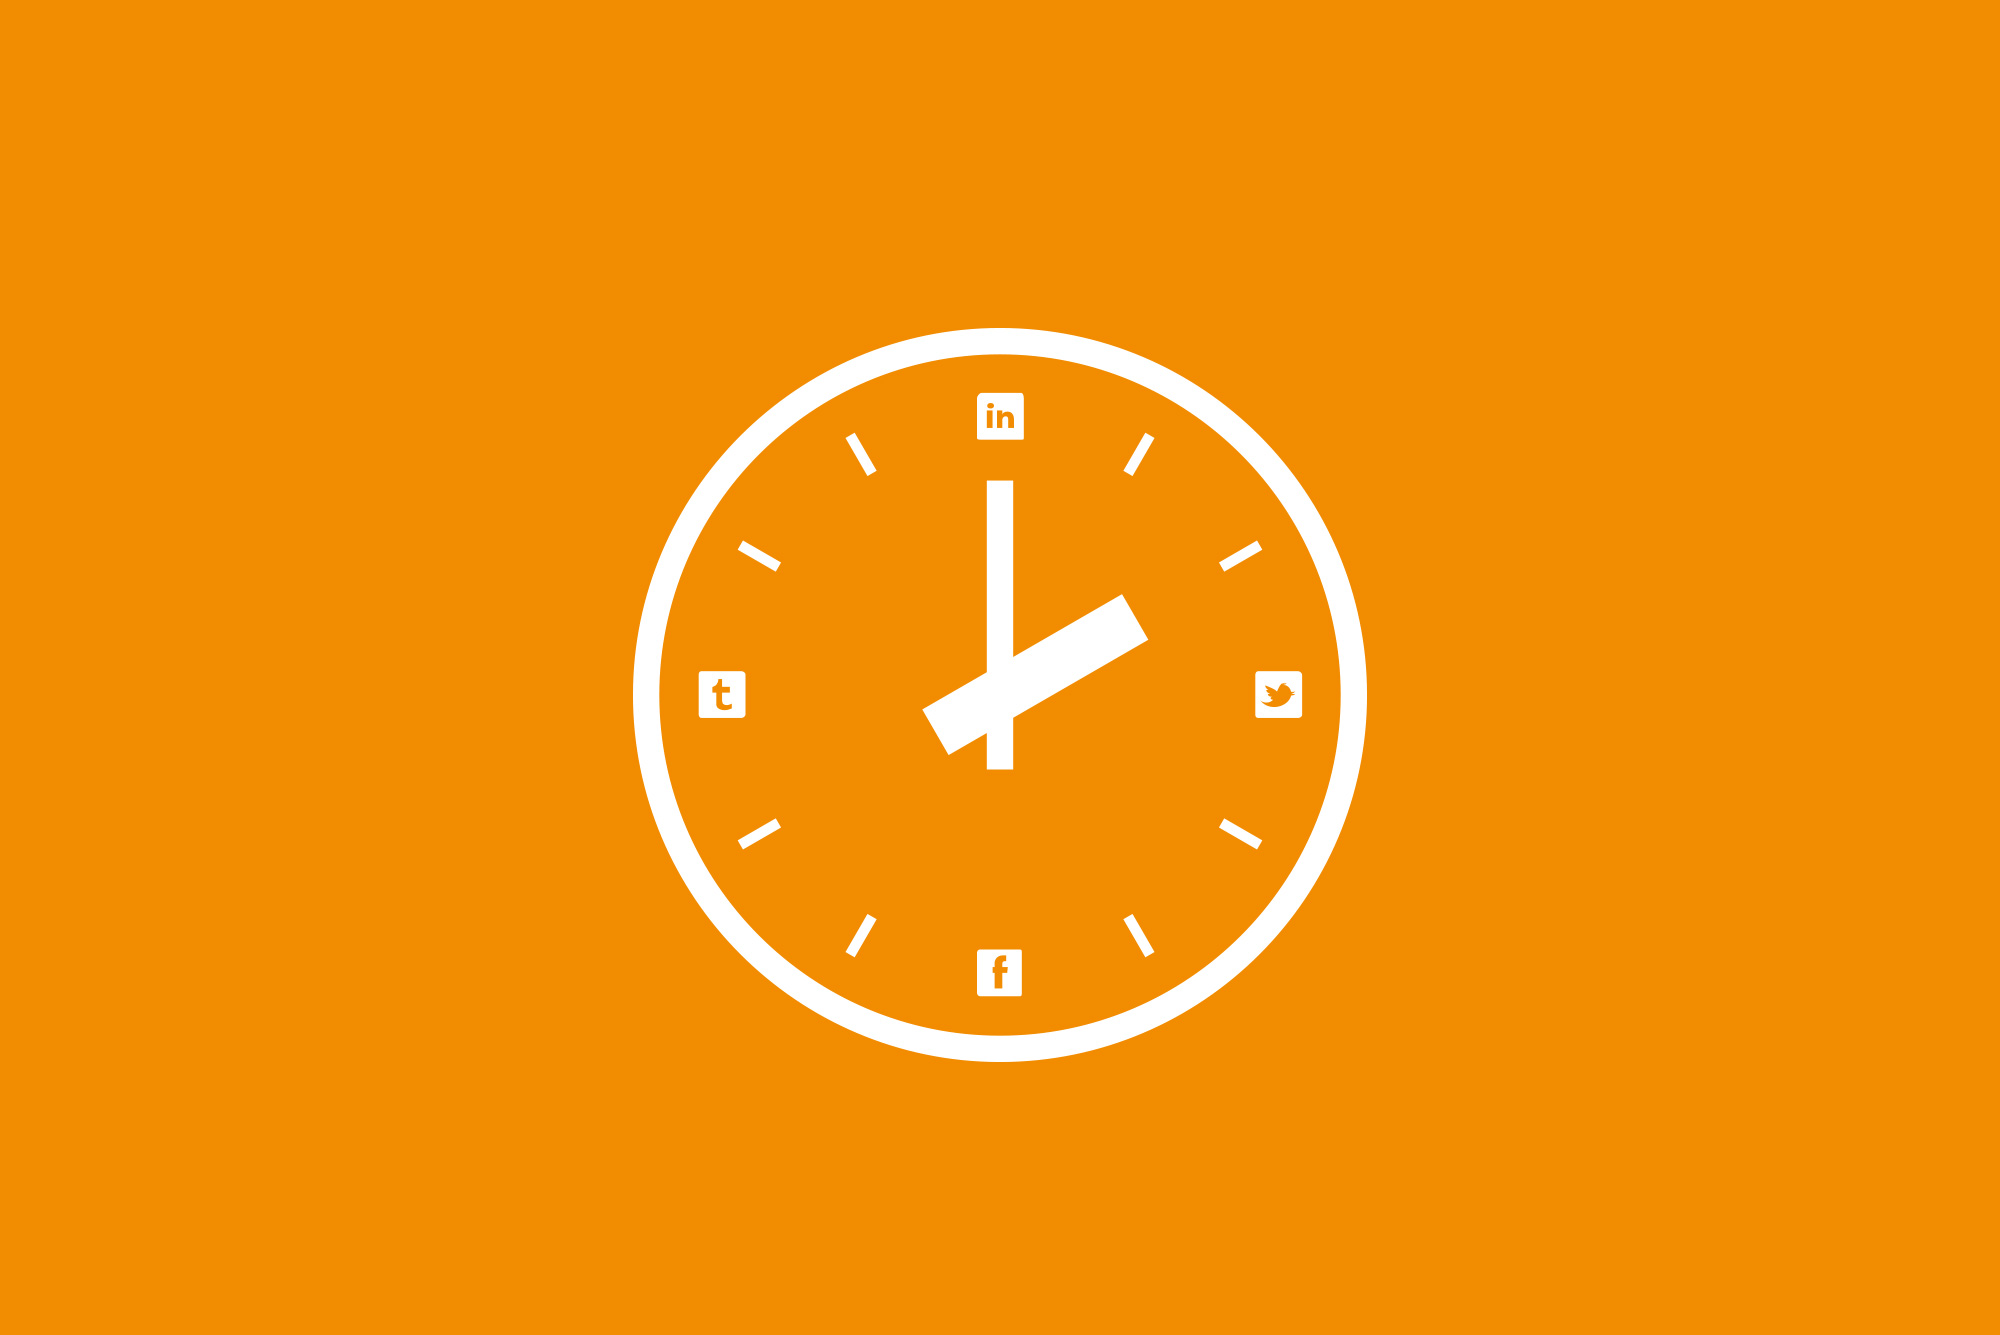 Clock with social media logos on orange background - Timing matters